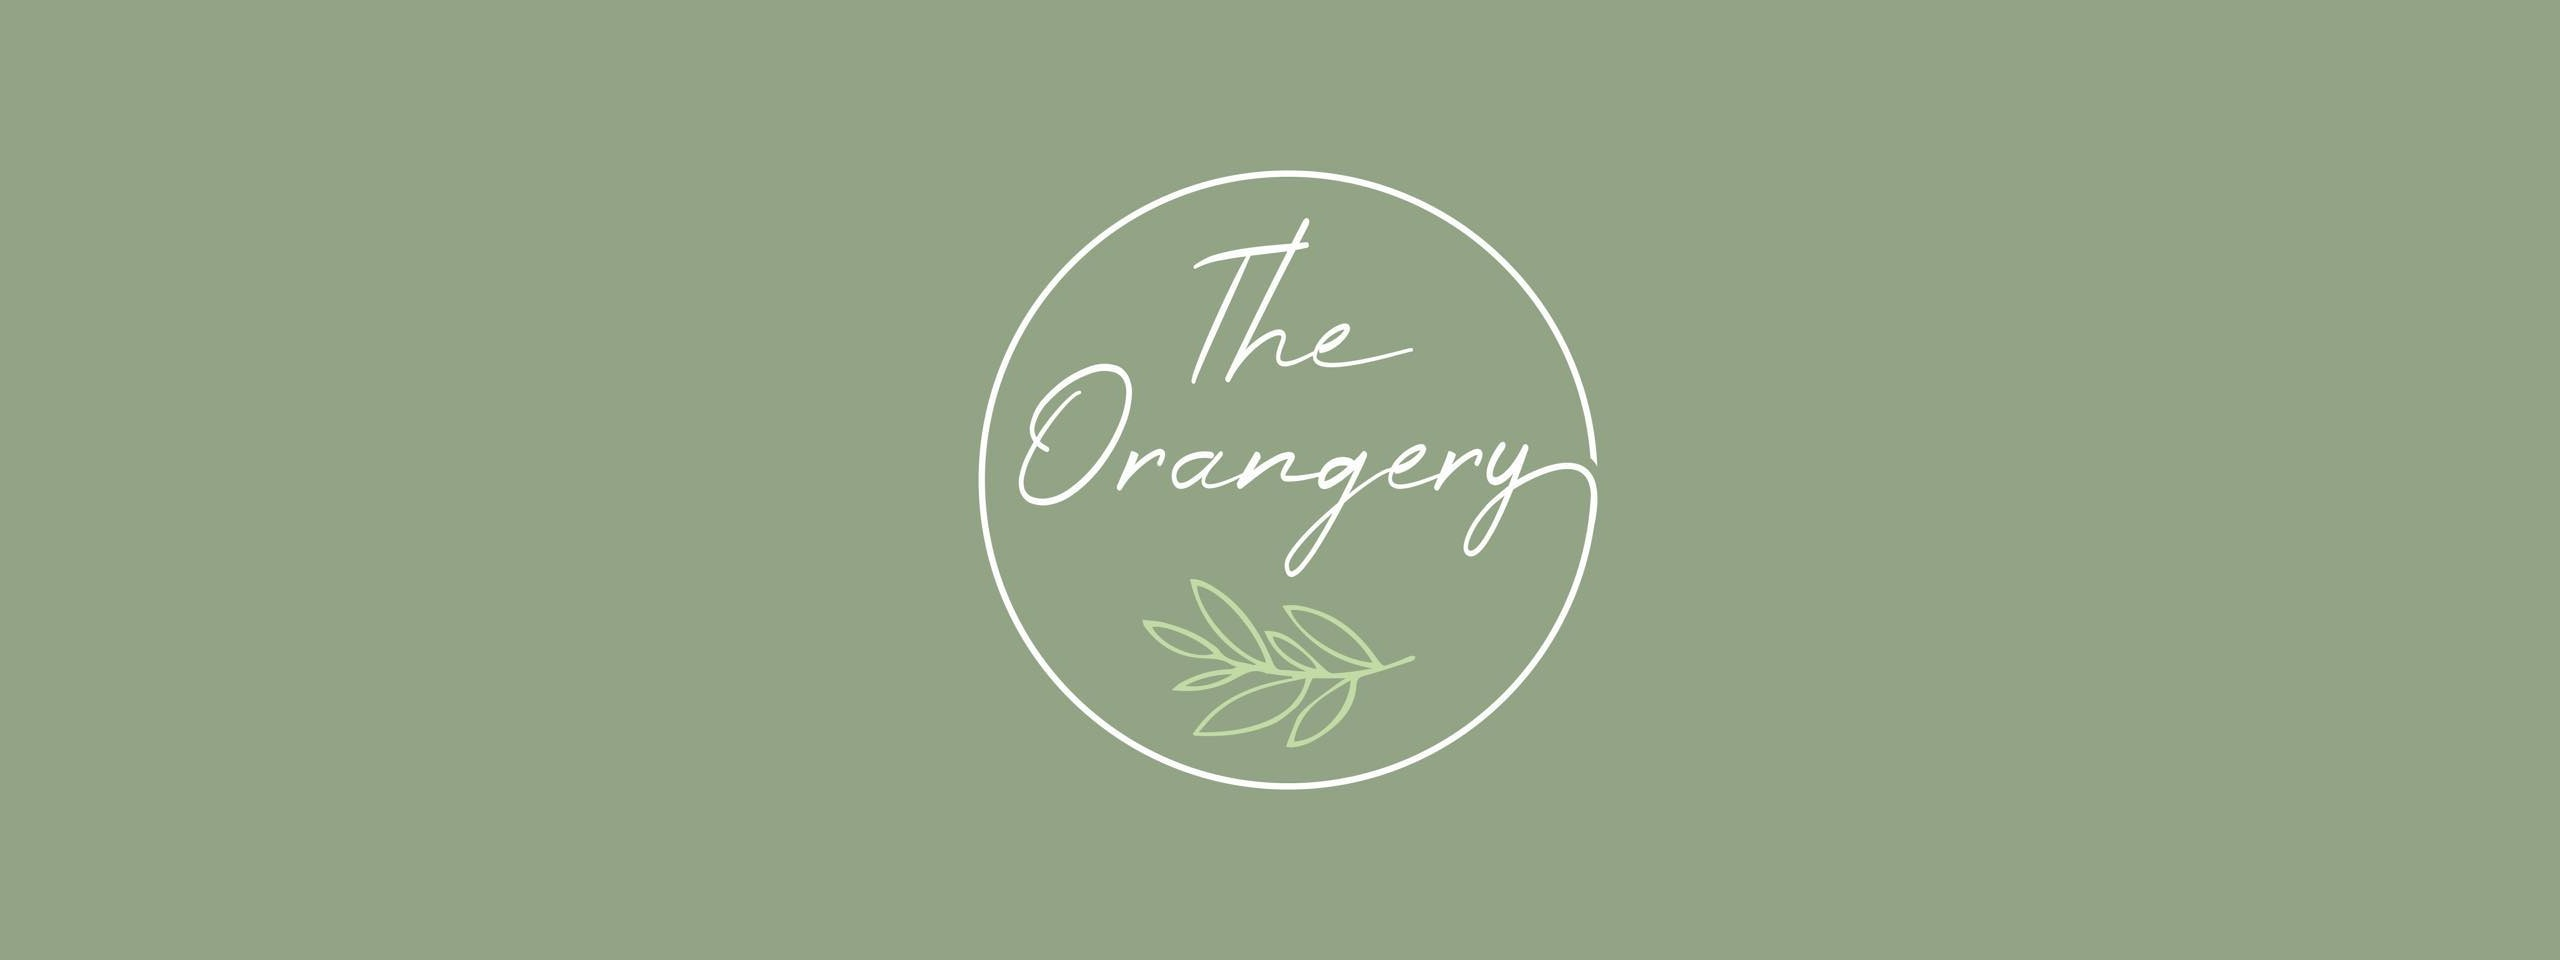 The Orangery Cafe Has Re-Opened